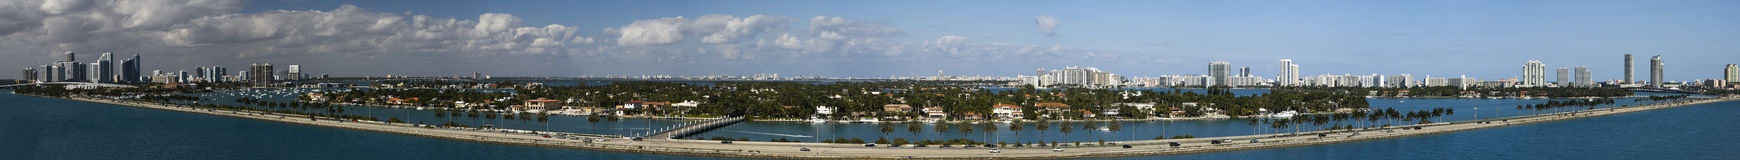 Miami Panorama Stock Photography